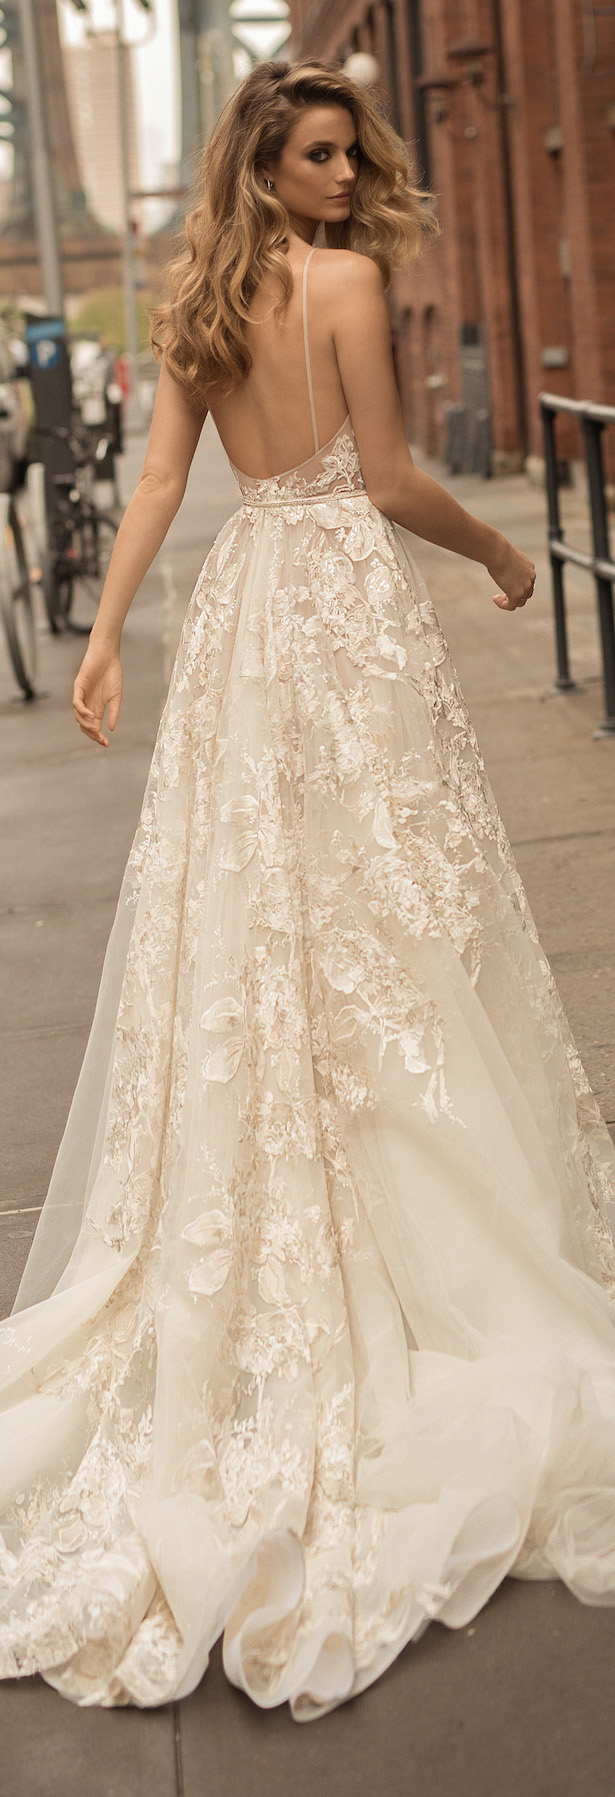 Wedding Dresses Pinterest 2018 28